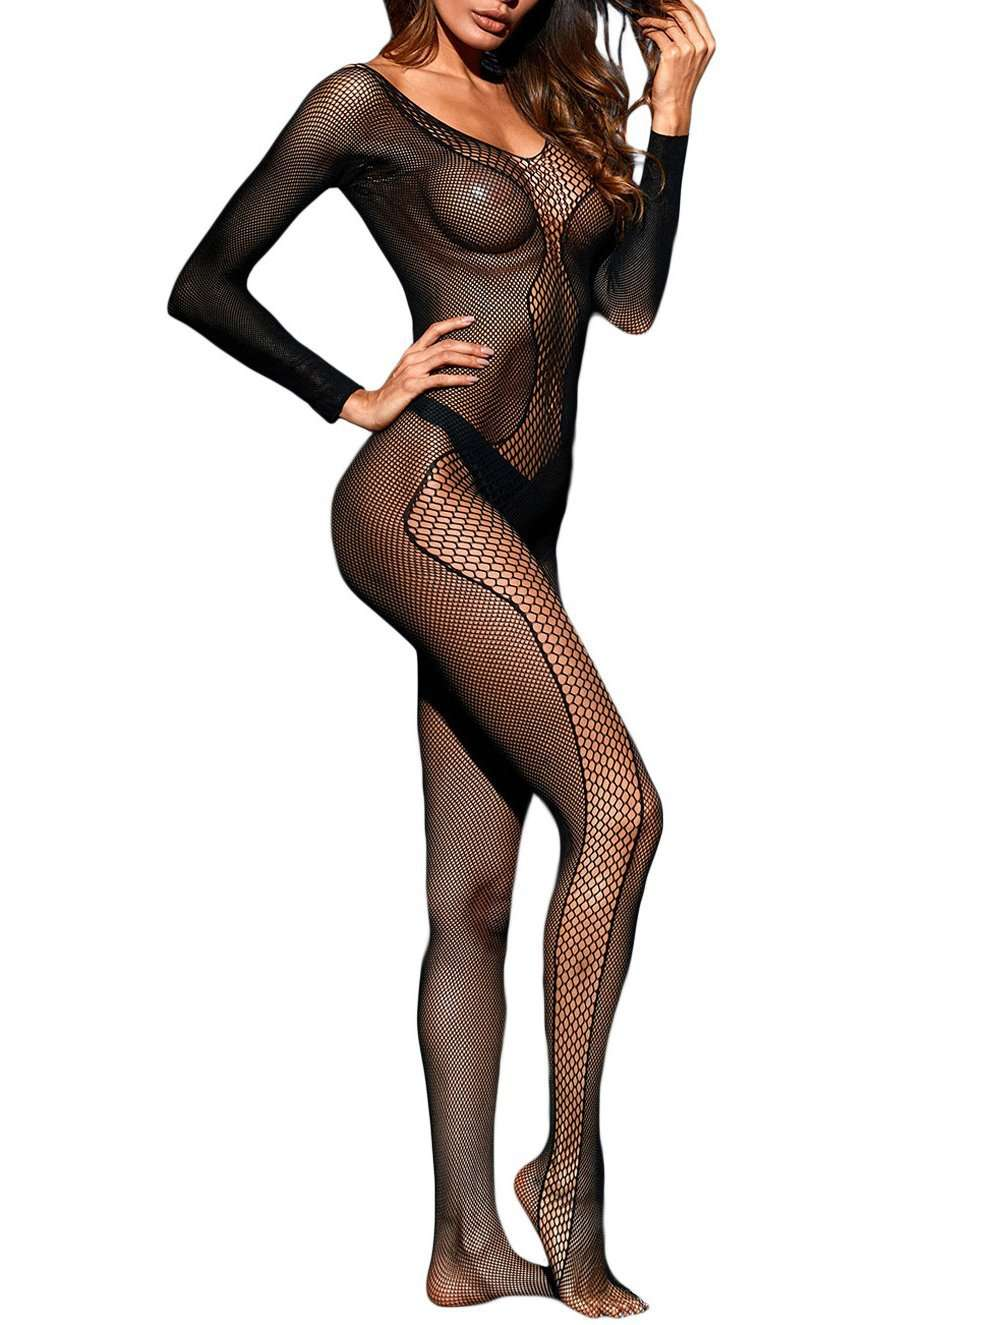 Black Asymmetrical Fishnet V-neck Long-sleeved Slit Tights Pantyhose